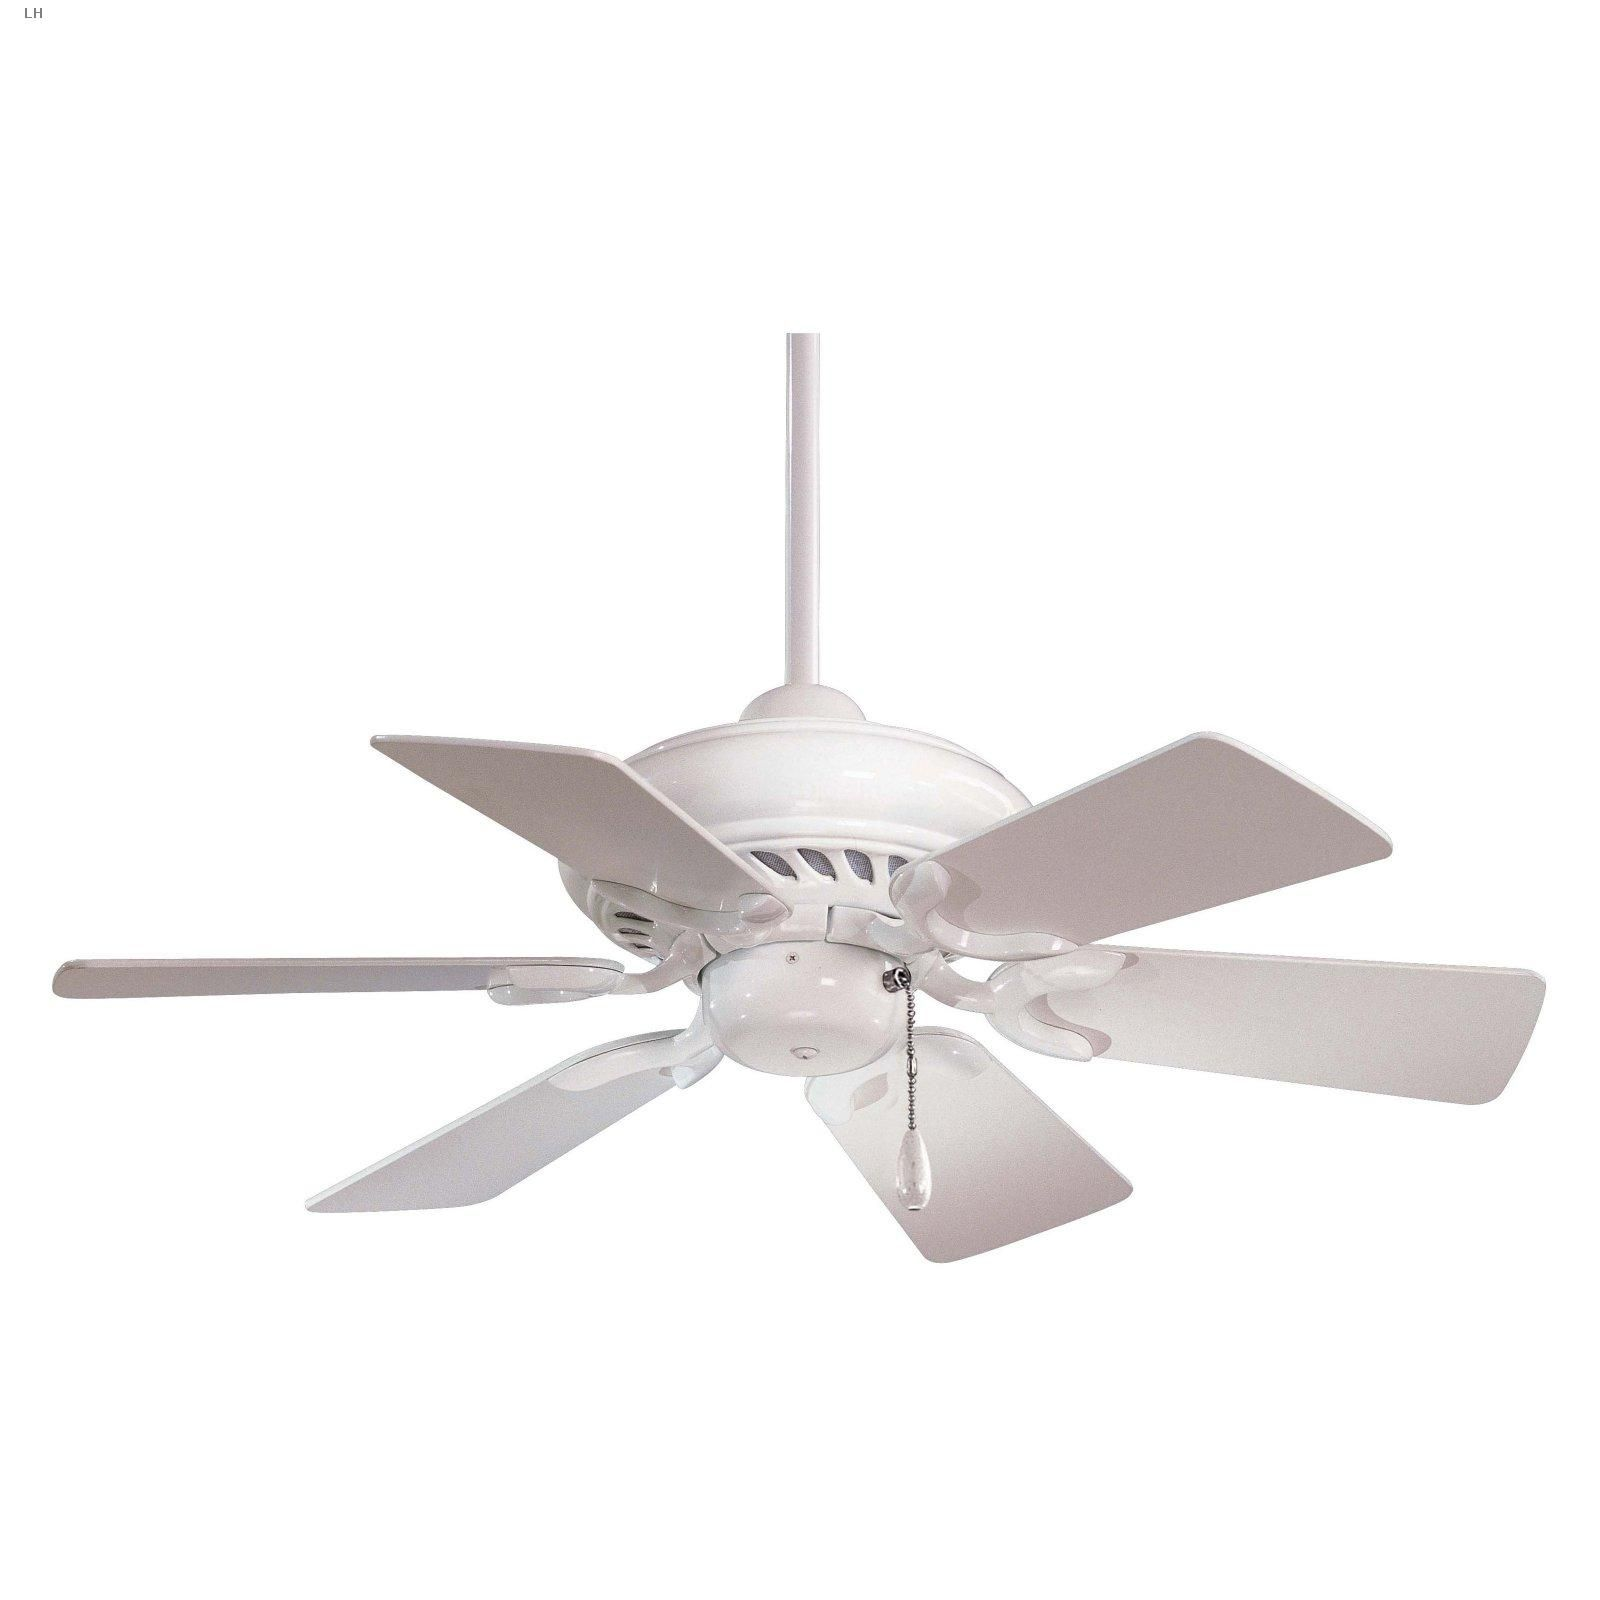 Minka Aire F562 Wh Supra 32 In Indoor Ceiling Fan White Ceilingfan Ceiling Fan Ceiling Minka Aire